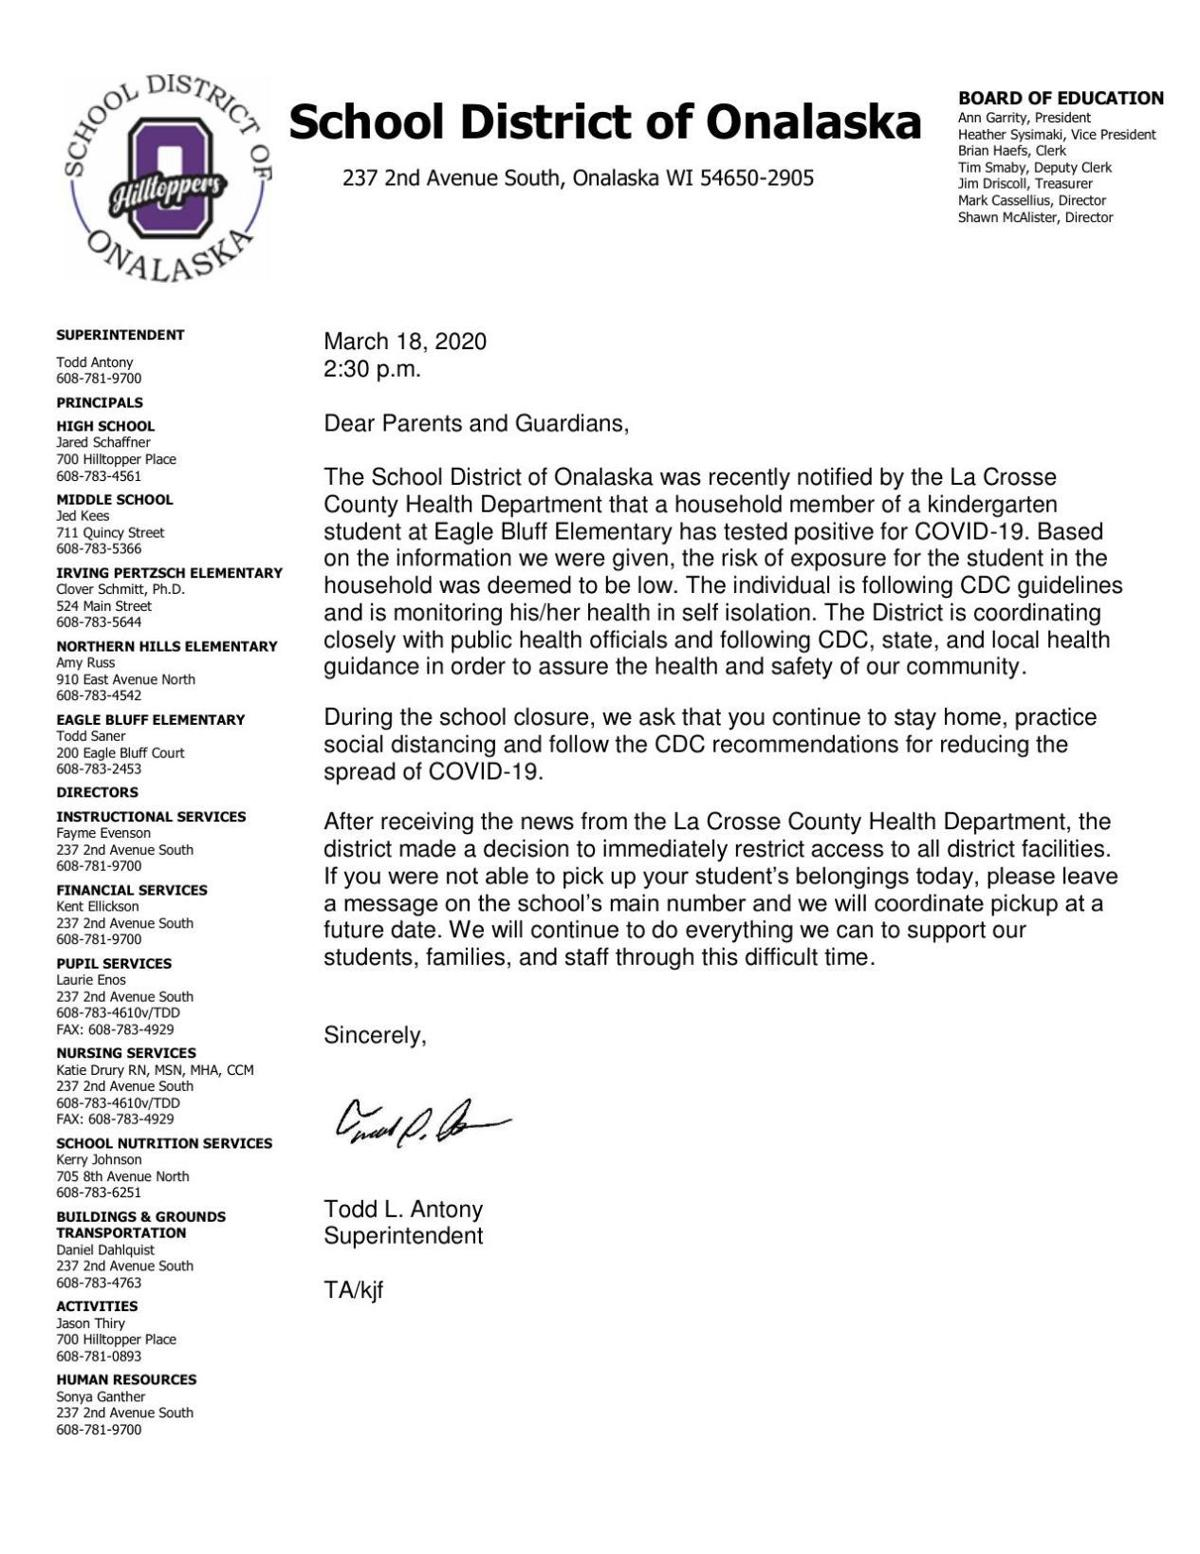 Letter from Onalaska School District